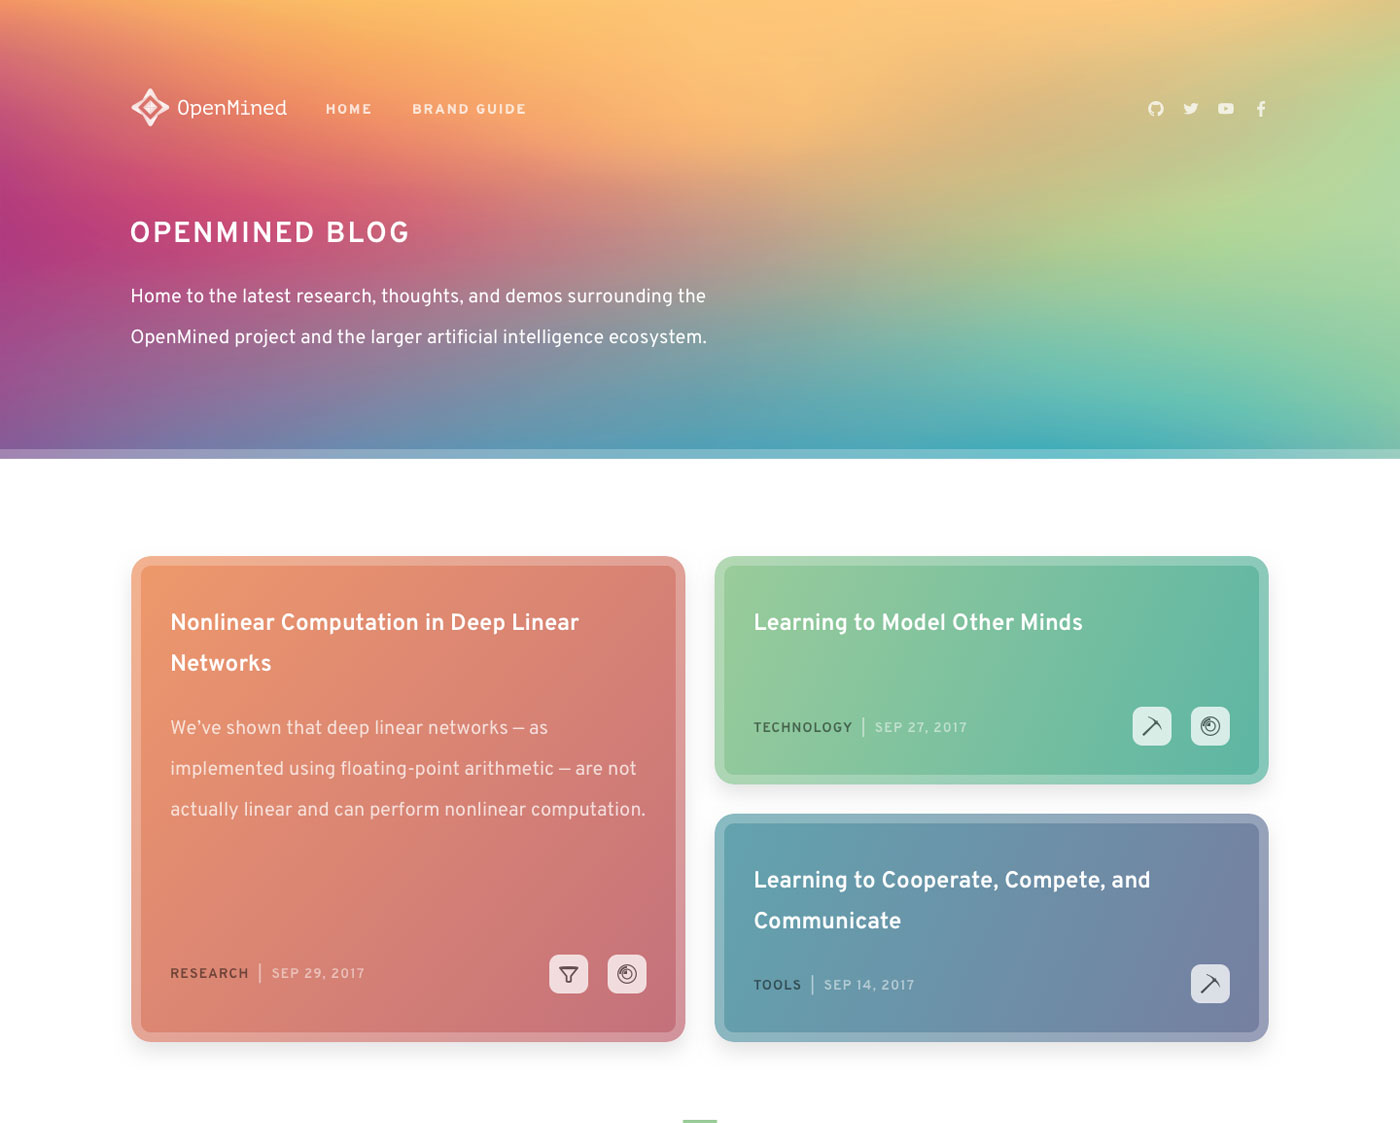 The theme for the OpenMined and Weekly Digs blogs